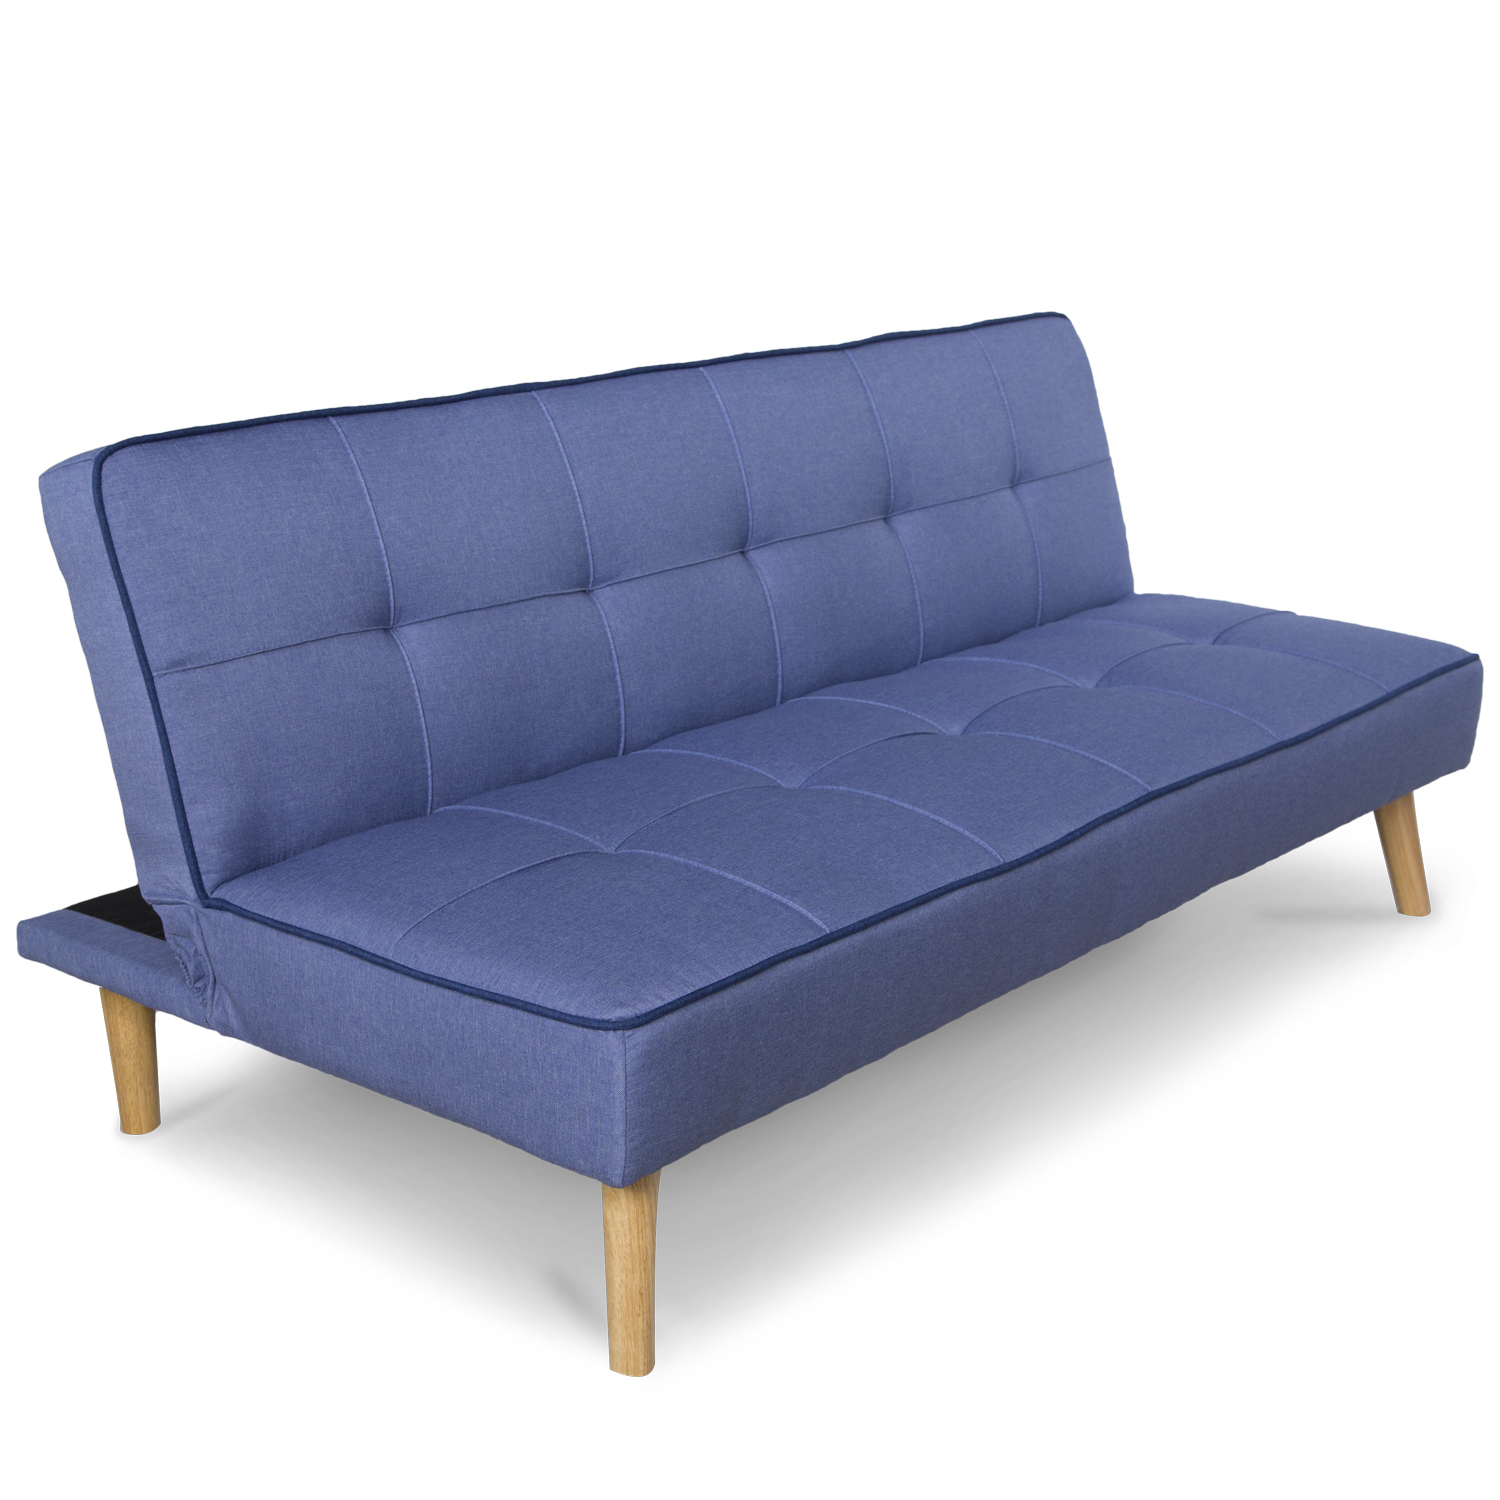 sofa bed sofa bed blue fold-out comfortable